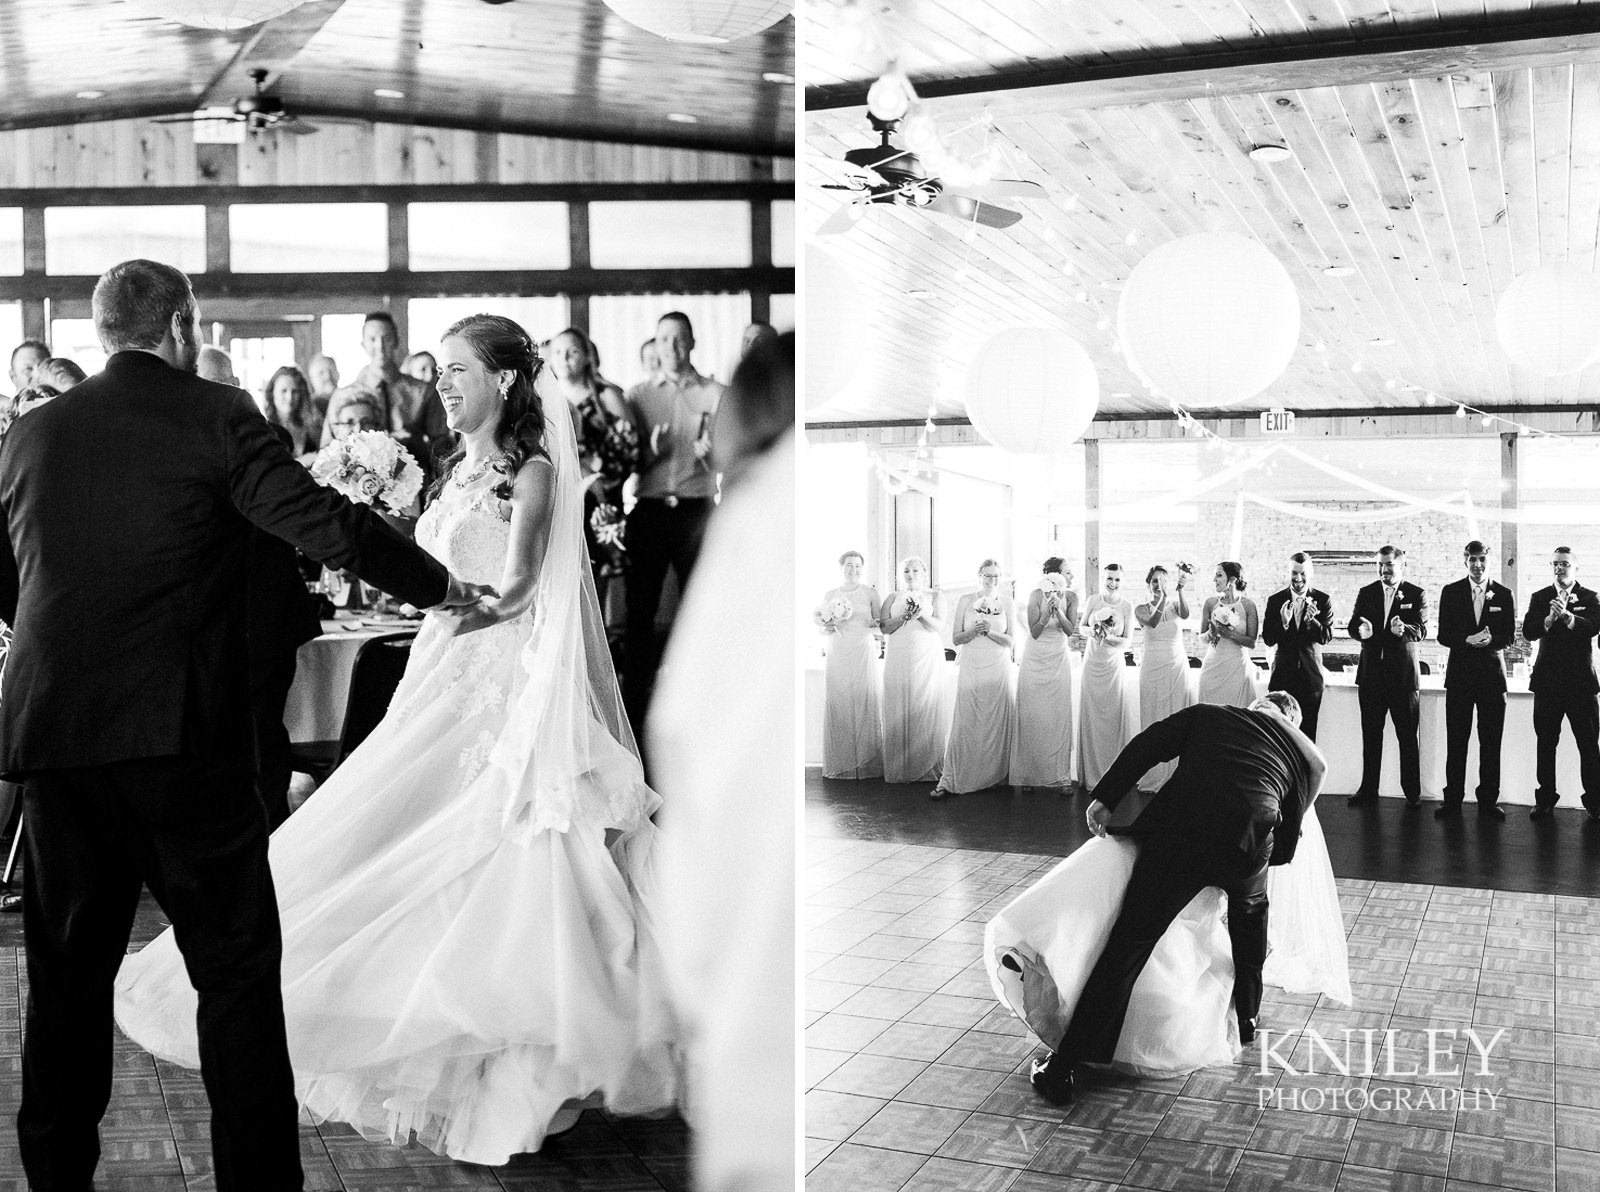 062 - Canandaigua NY wedding pictures - Kings Catering wedding reception.jpg